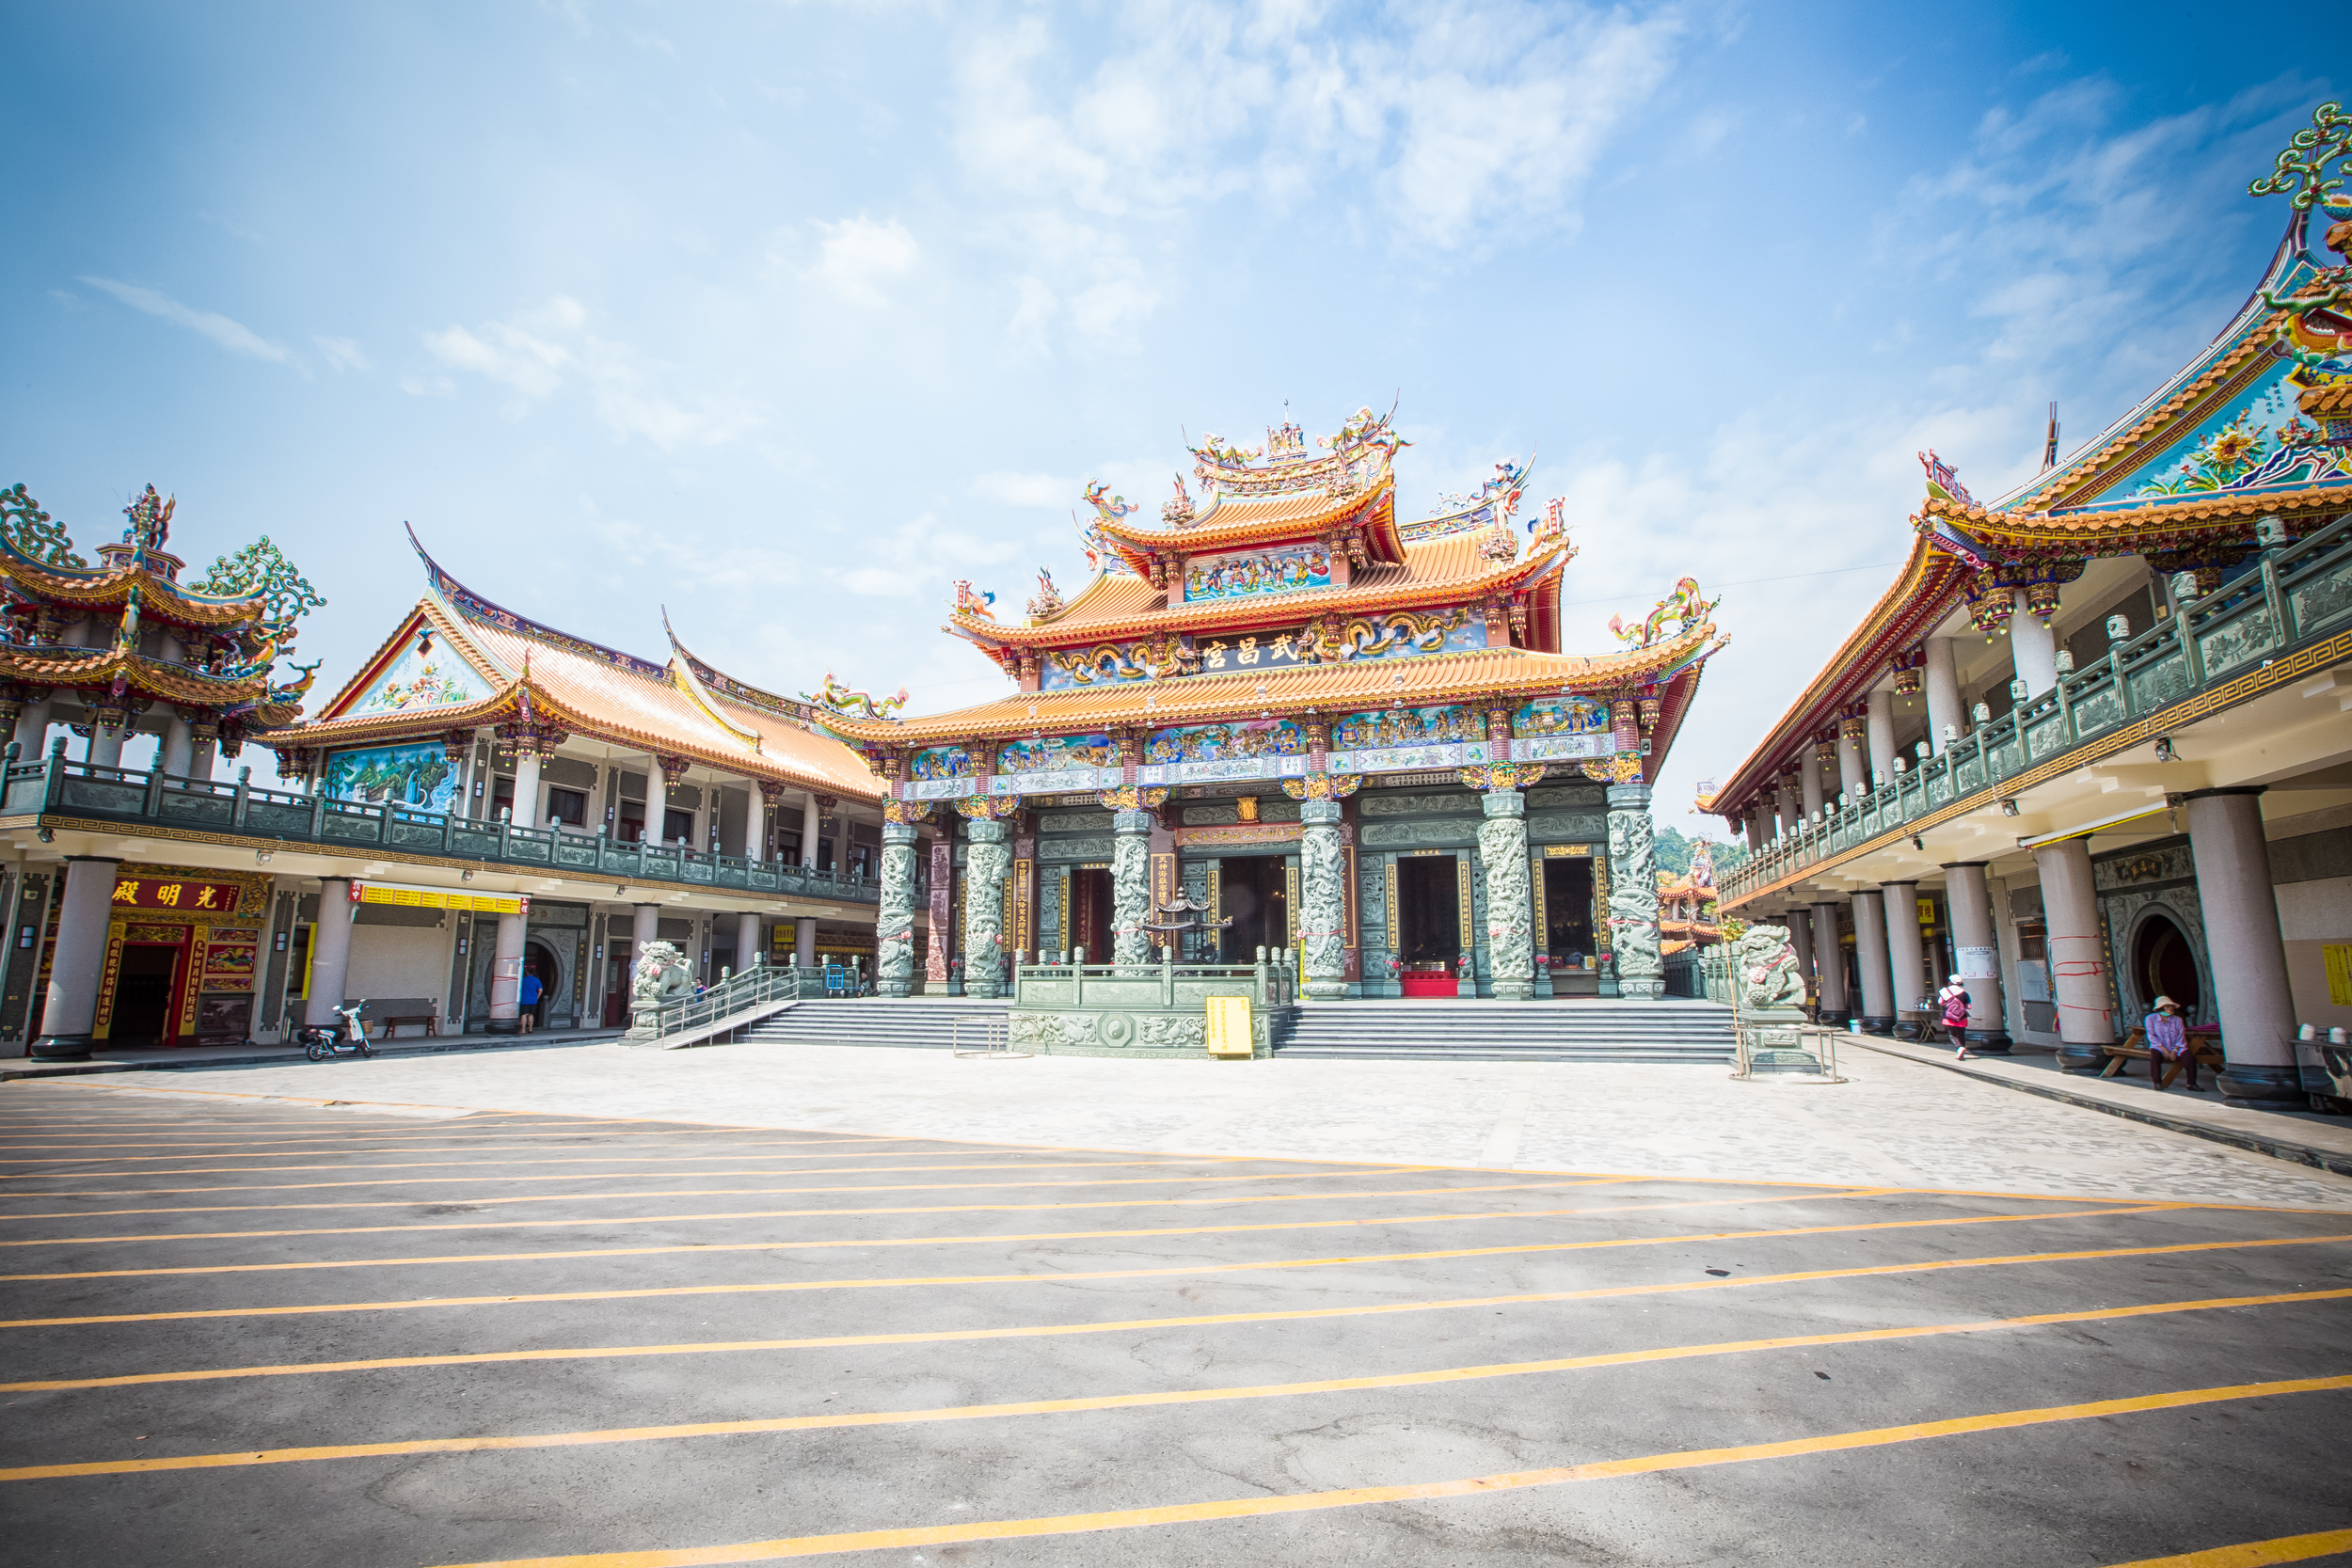 Stay safe Wuchang Temple!